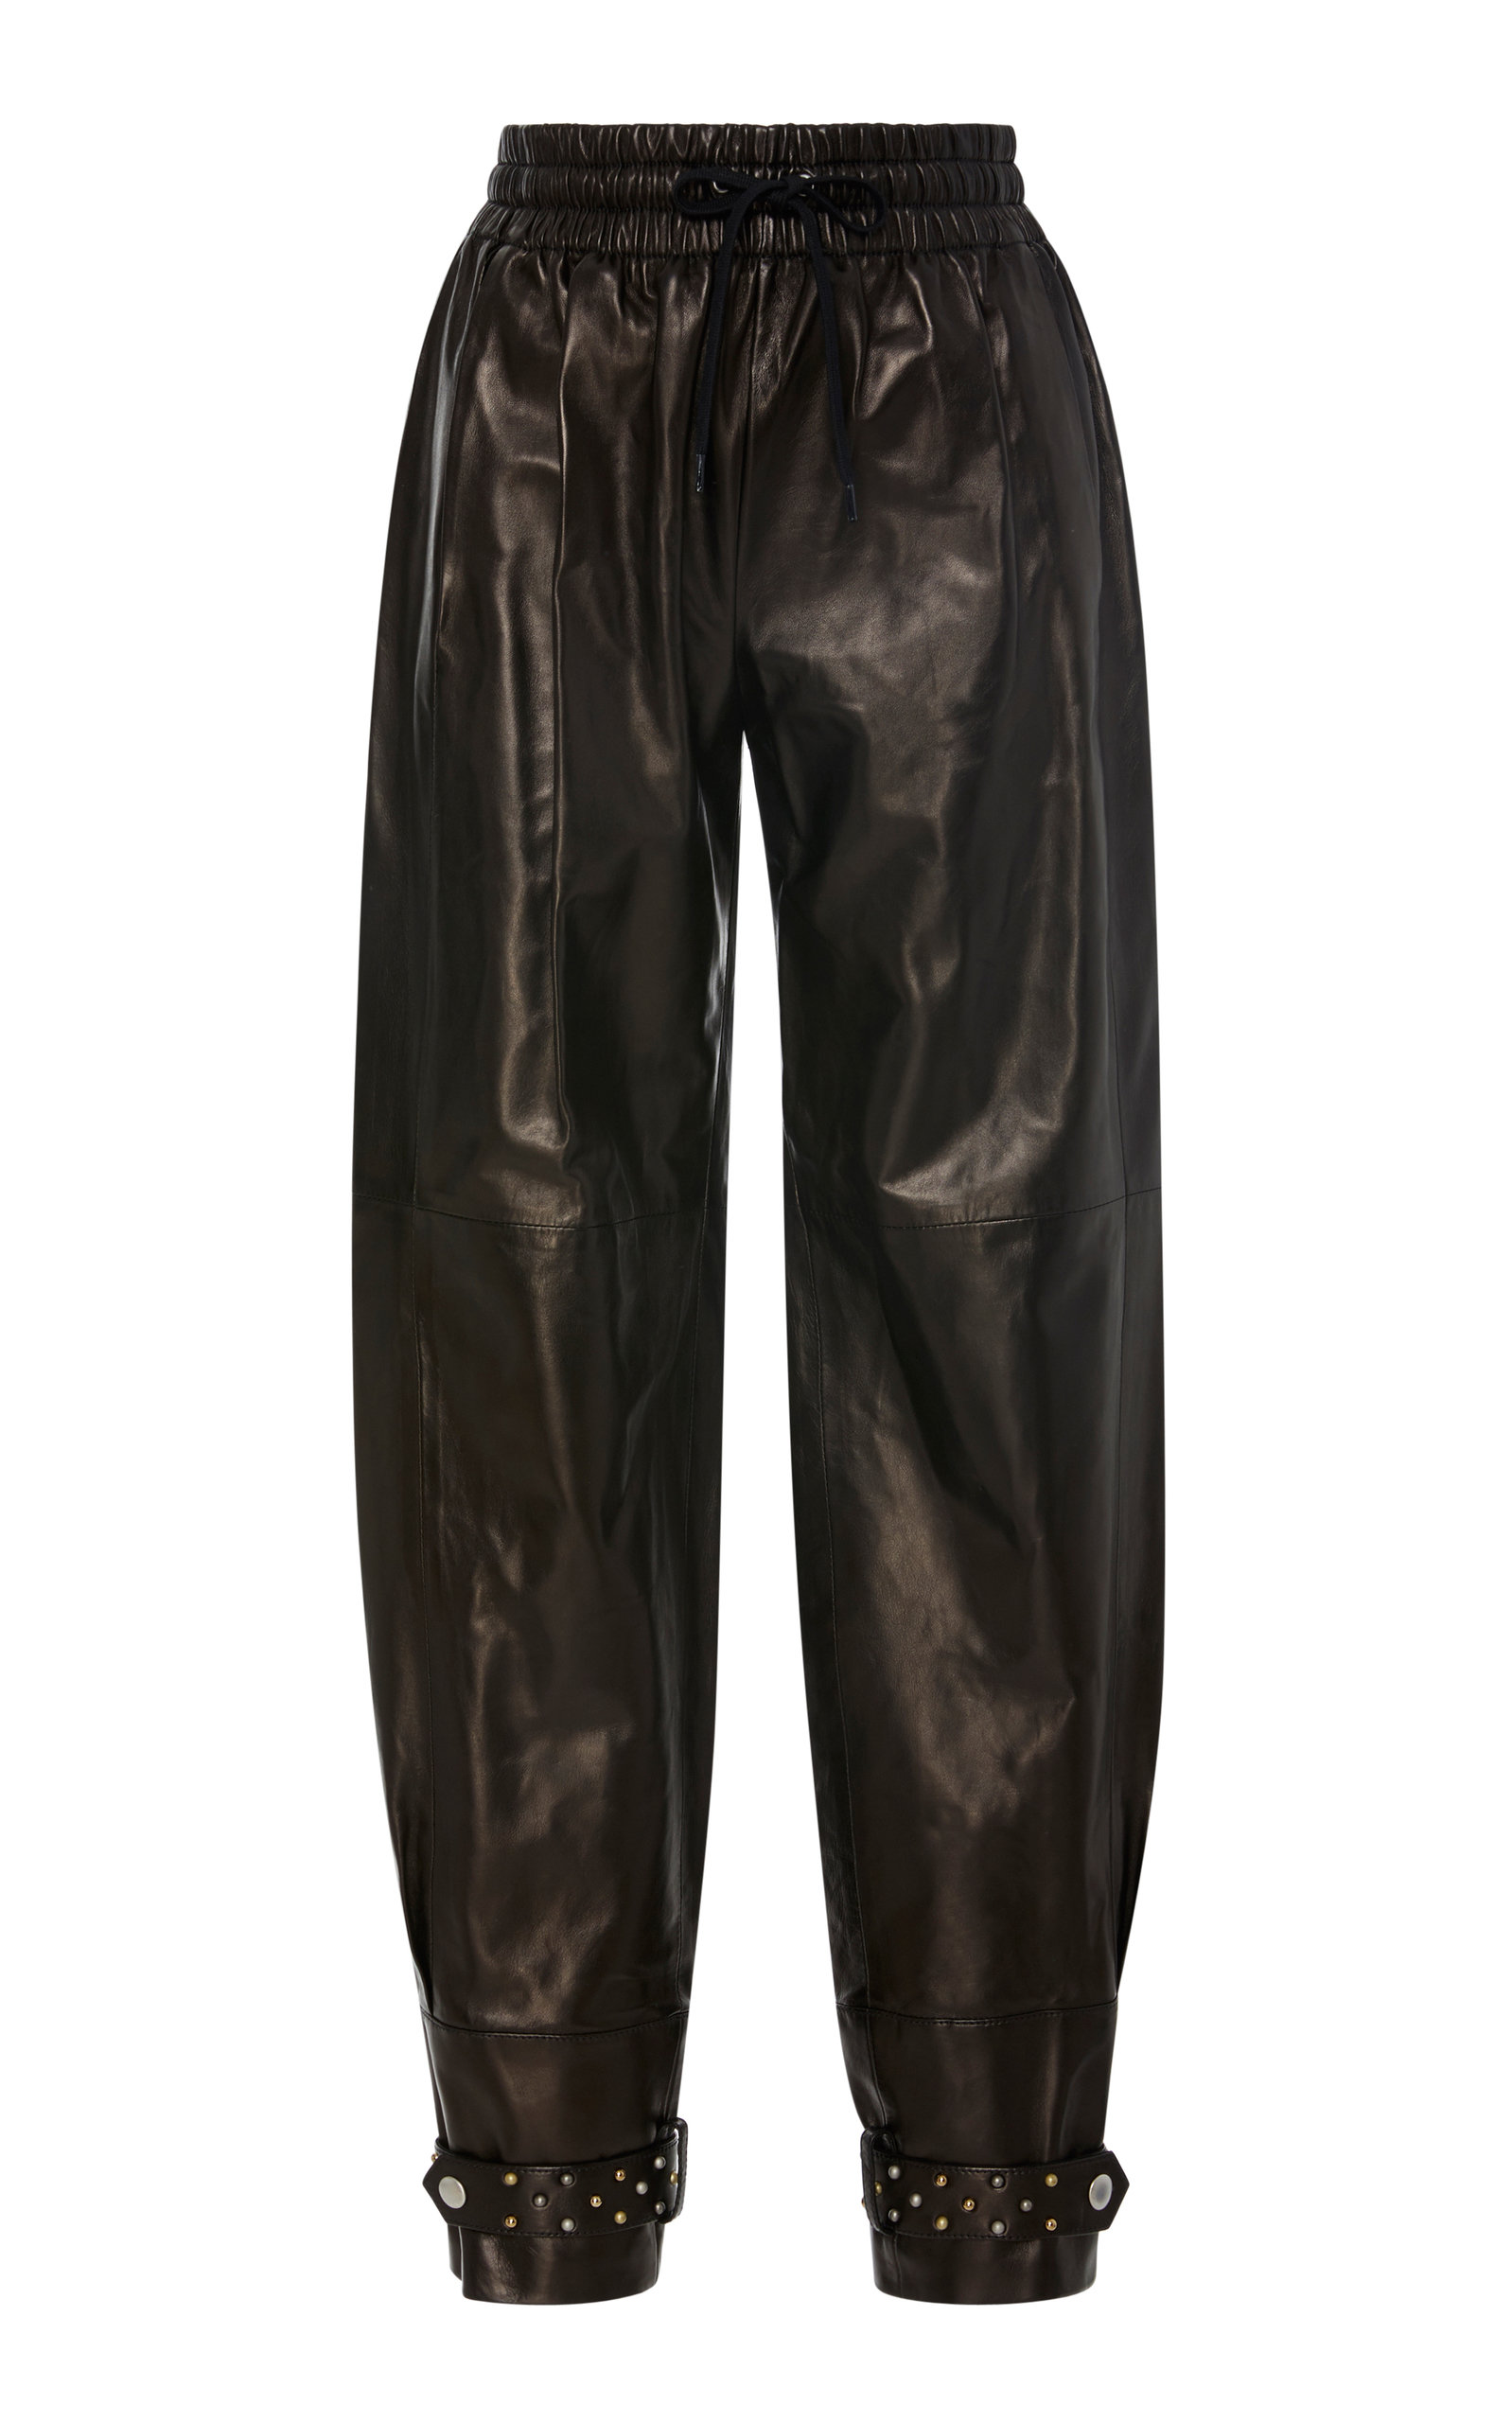 With Mastercard Sale Online Pearl-Embellished Leather Tapered Pants Givenchy Best Place Visa Payment Clearance Authentic otC8Hq